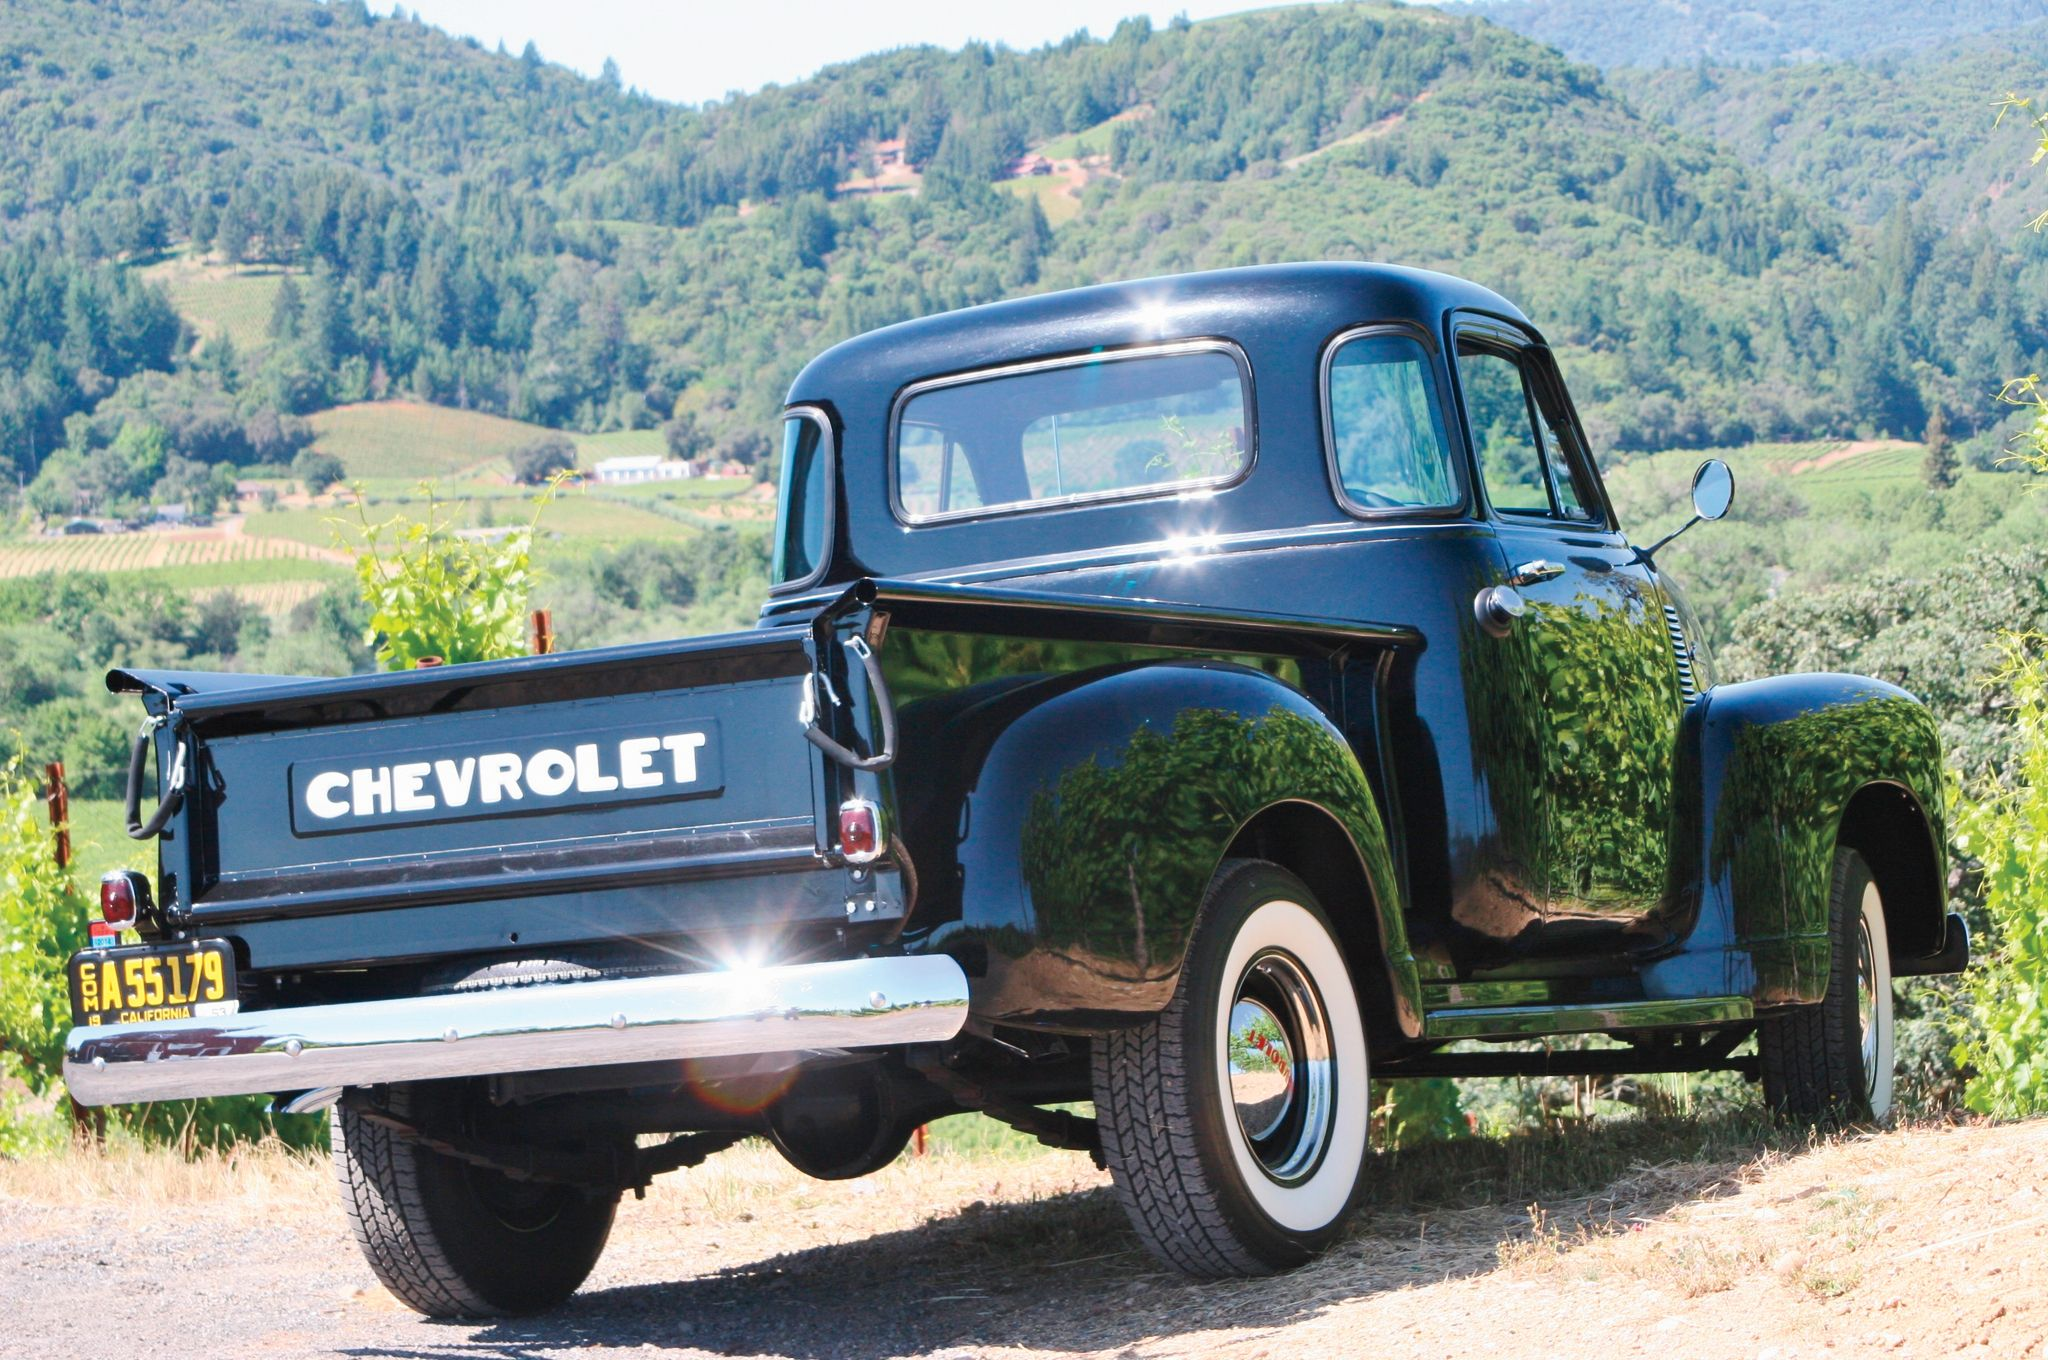 Old Trucks And Tractors In California Wine Country - Travel